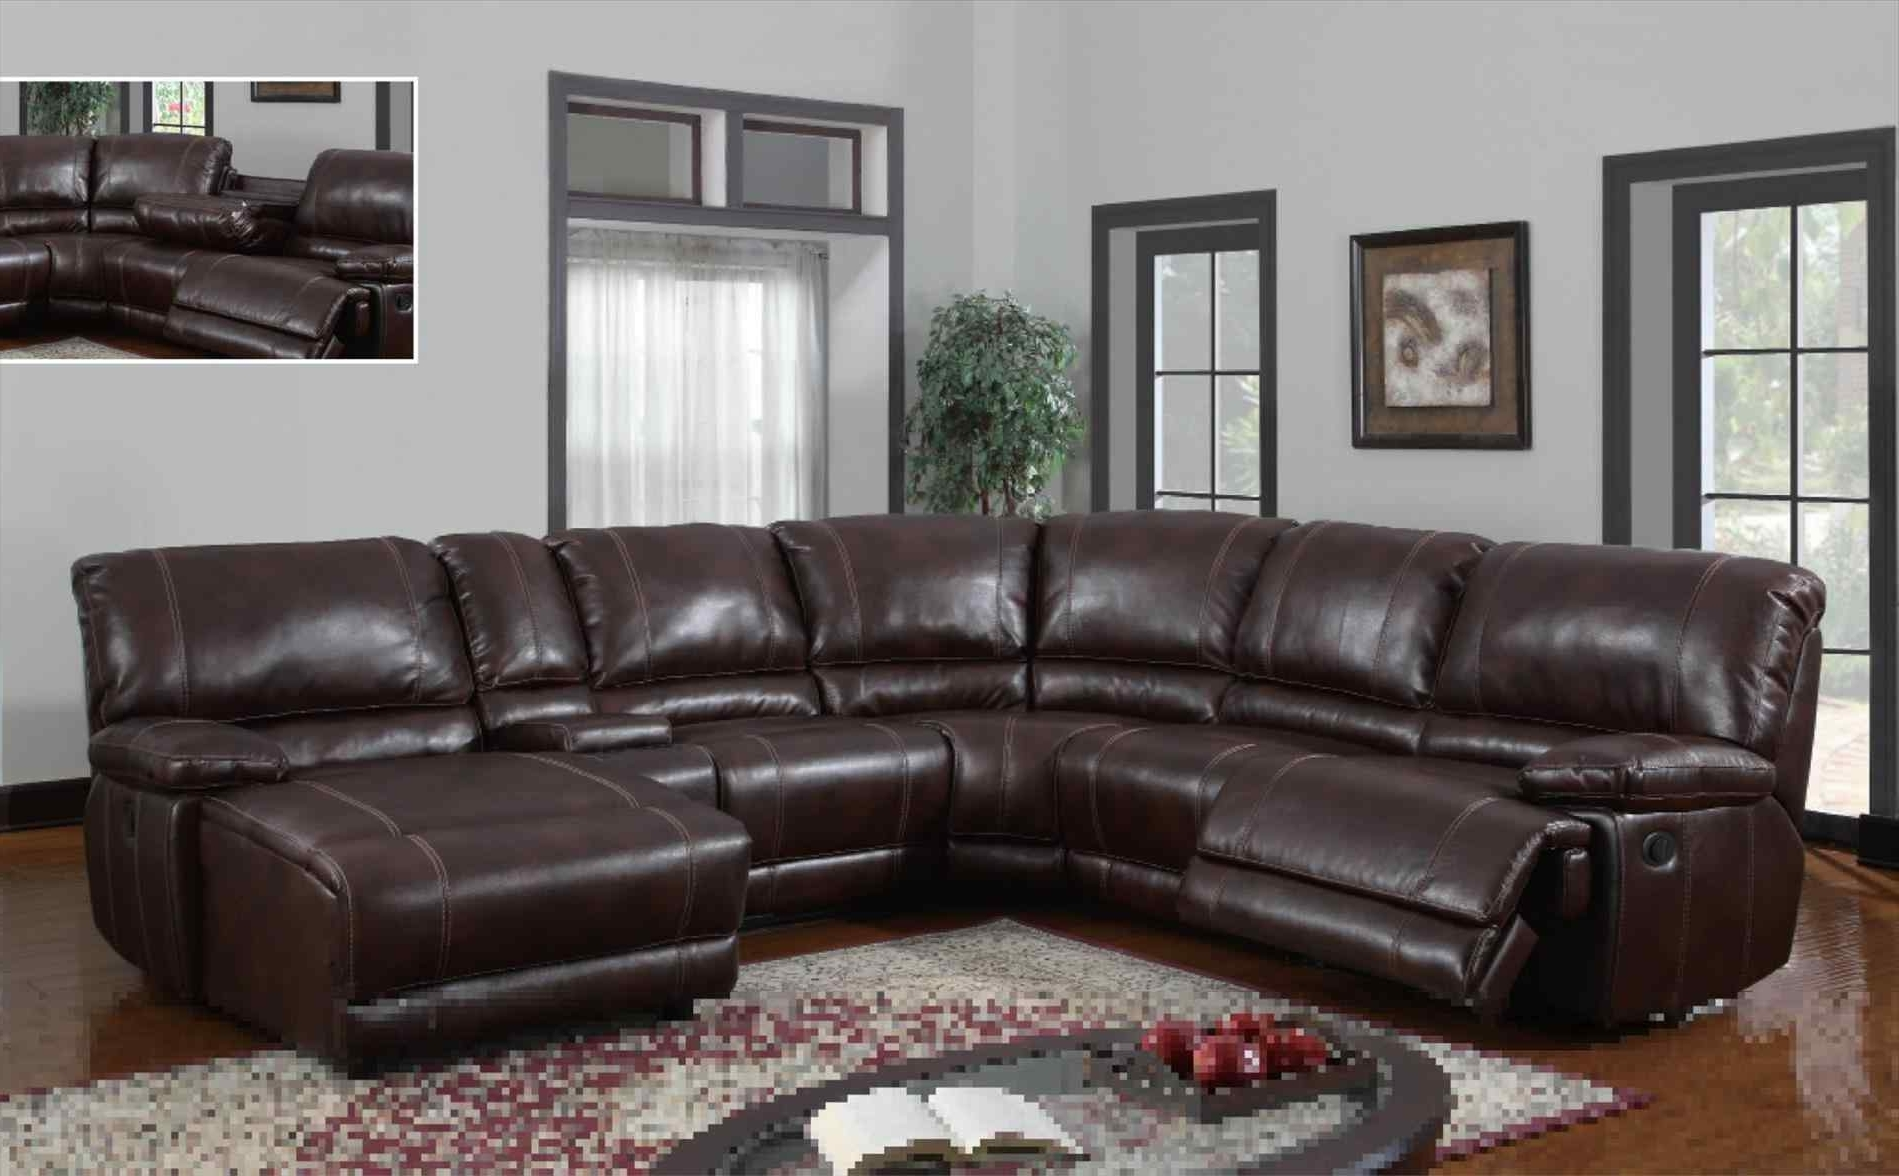 Well Known The Images Collection Of Thomasville Sectional Sofa Dining Sets With Regard To Thomasville Sectional Sofas (View 9 of 15)